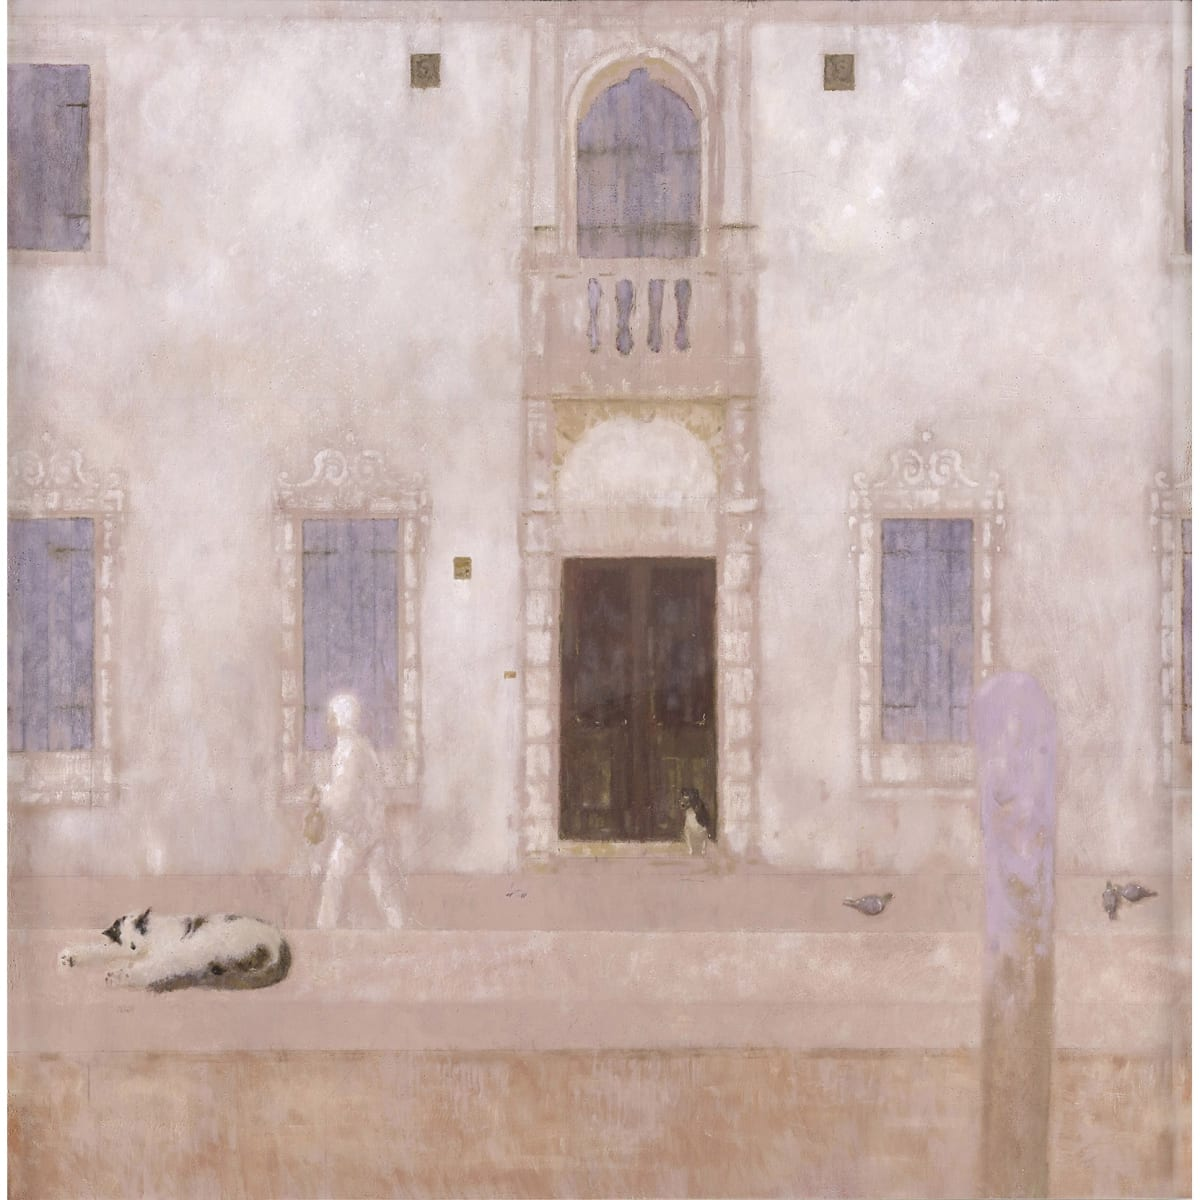 John Halliday The White Jogger, Venice, c2000 signed on frame verso oil on canvas laid on board 40 x 40 inches